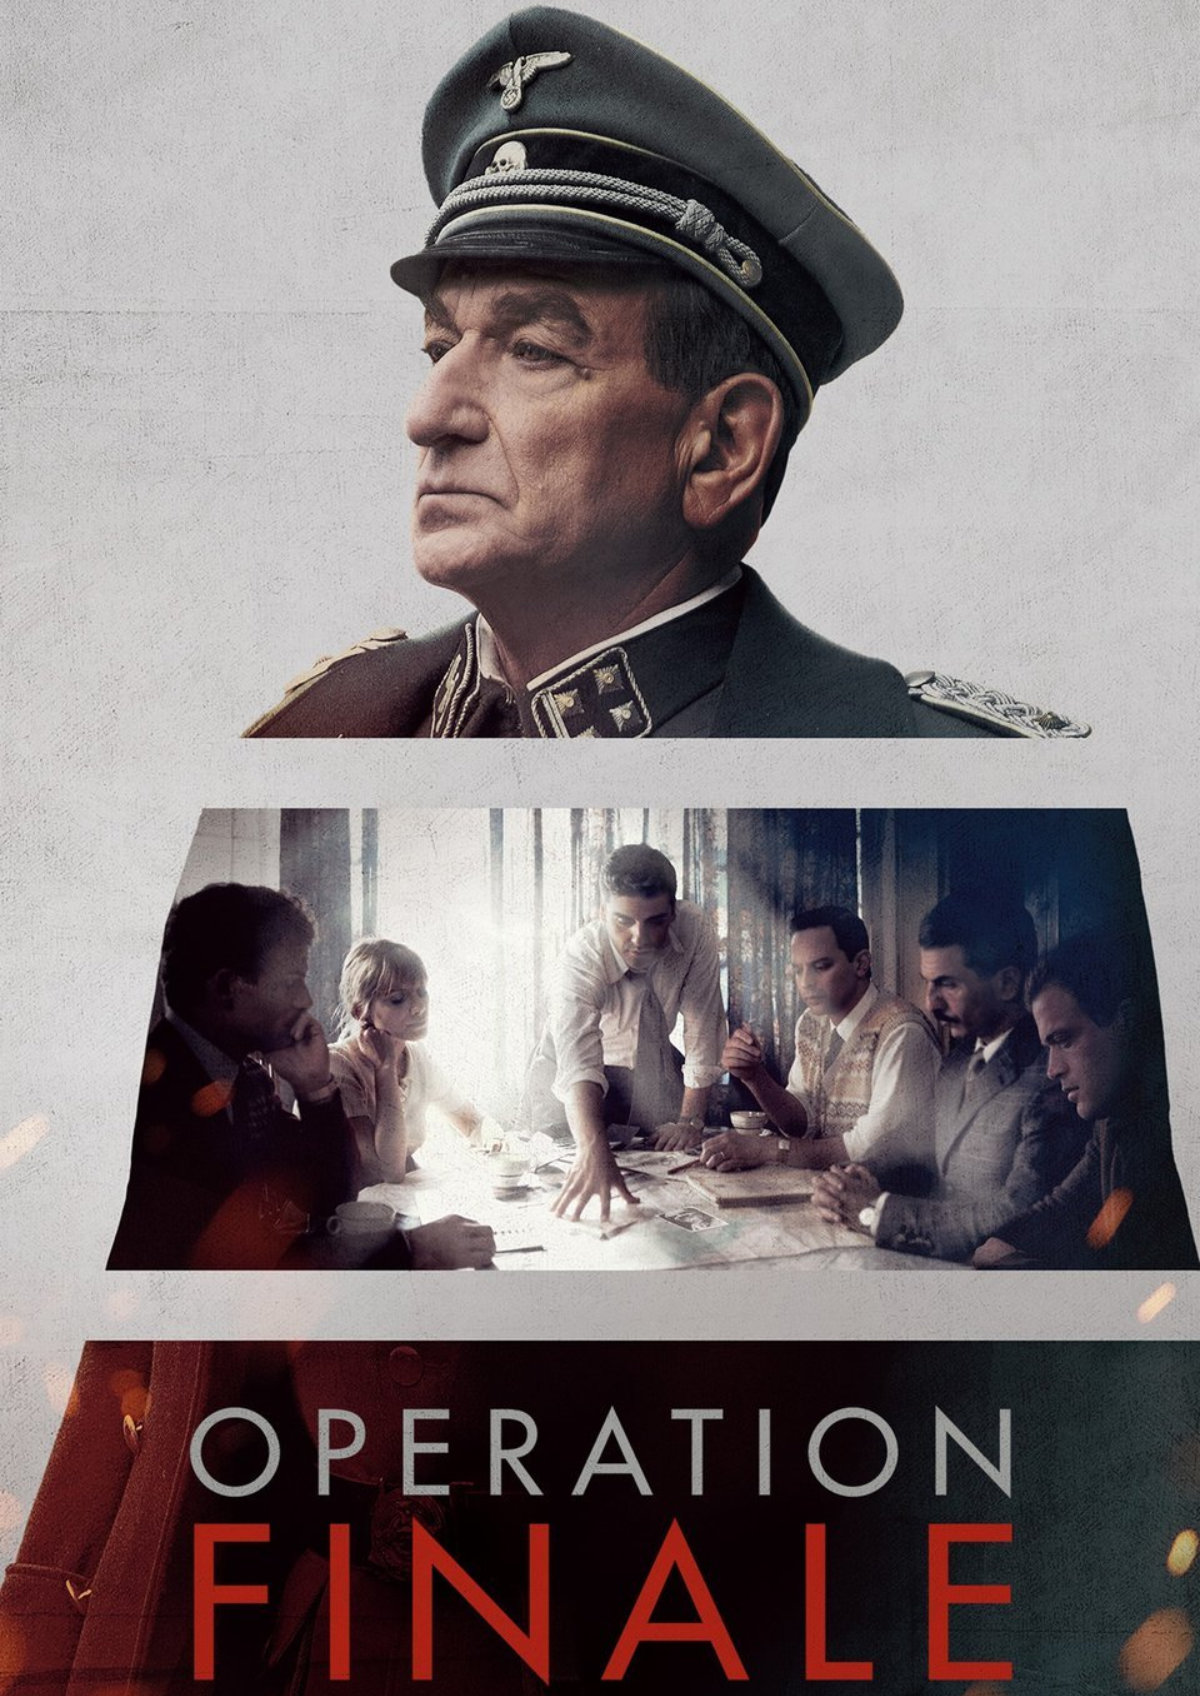 'Operation Finale' movie poster